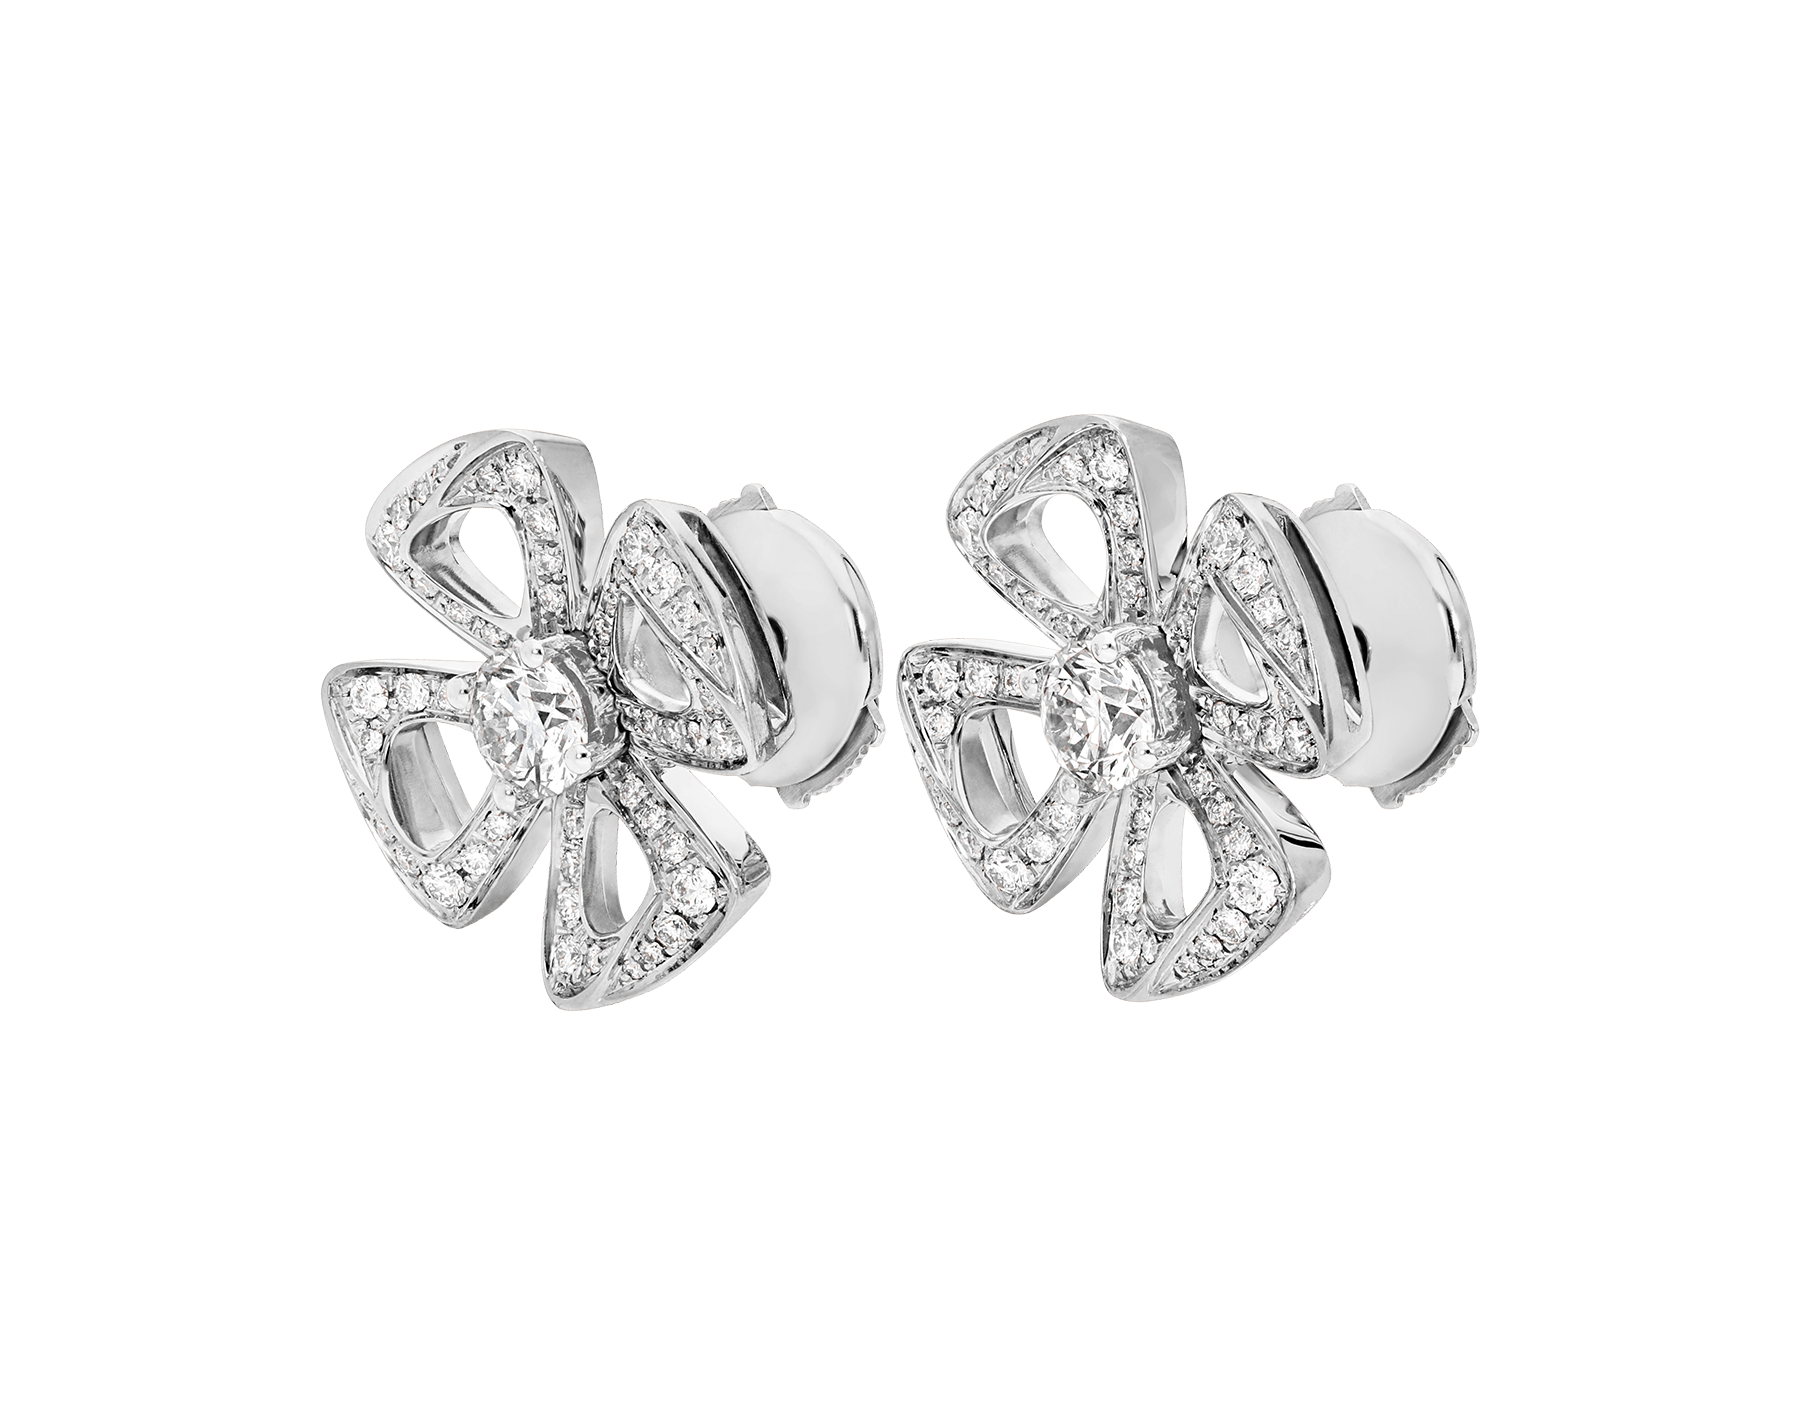 Fiorever 18 kt white gold earrings set with two central diamonds (0.20 ct each) and pavé diamonds (0.33 ct) 354502 image 2